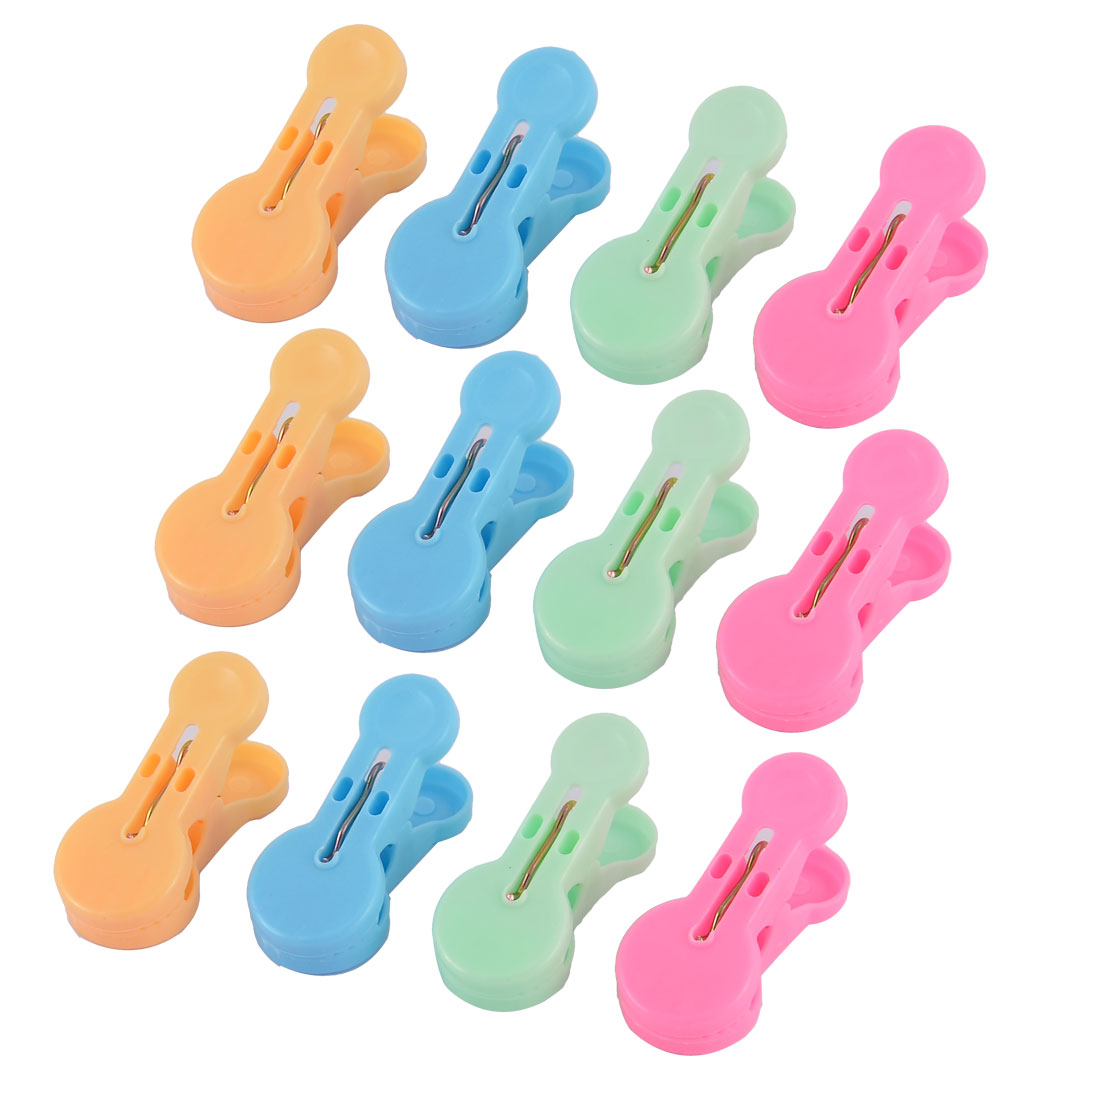 Household Plastic Laundry Clothes Drying Peg Clip Clothespin Assorted Color 12 Pcs